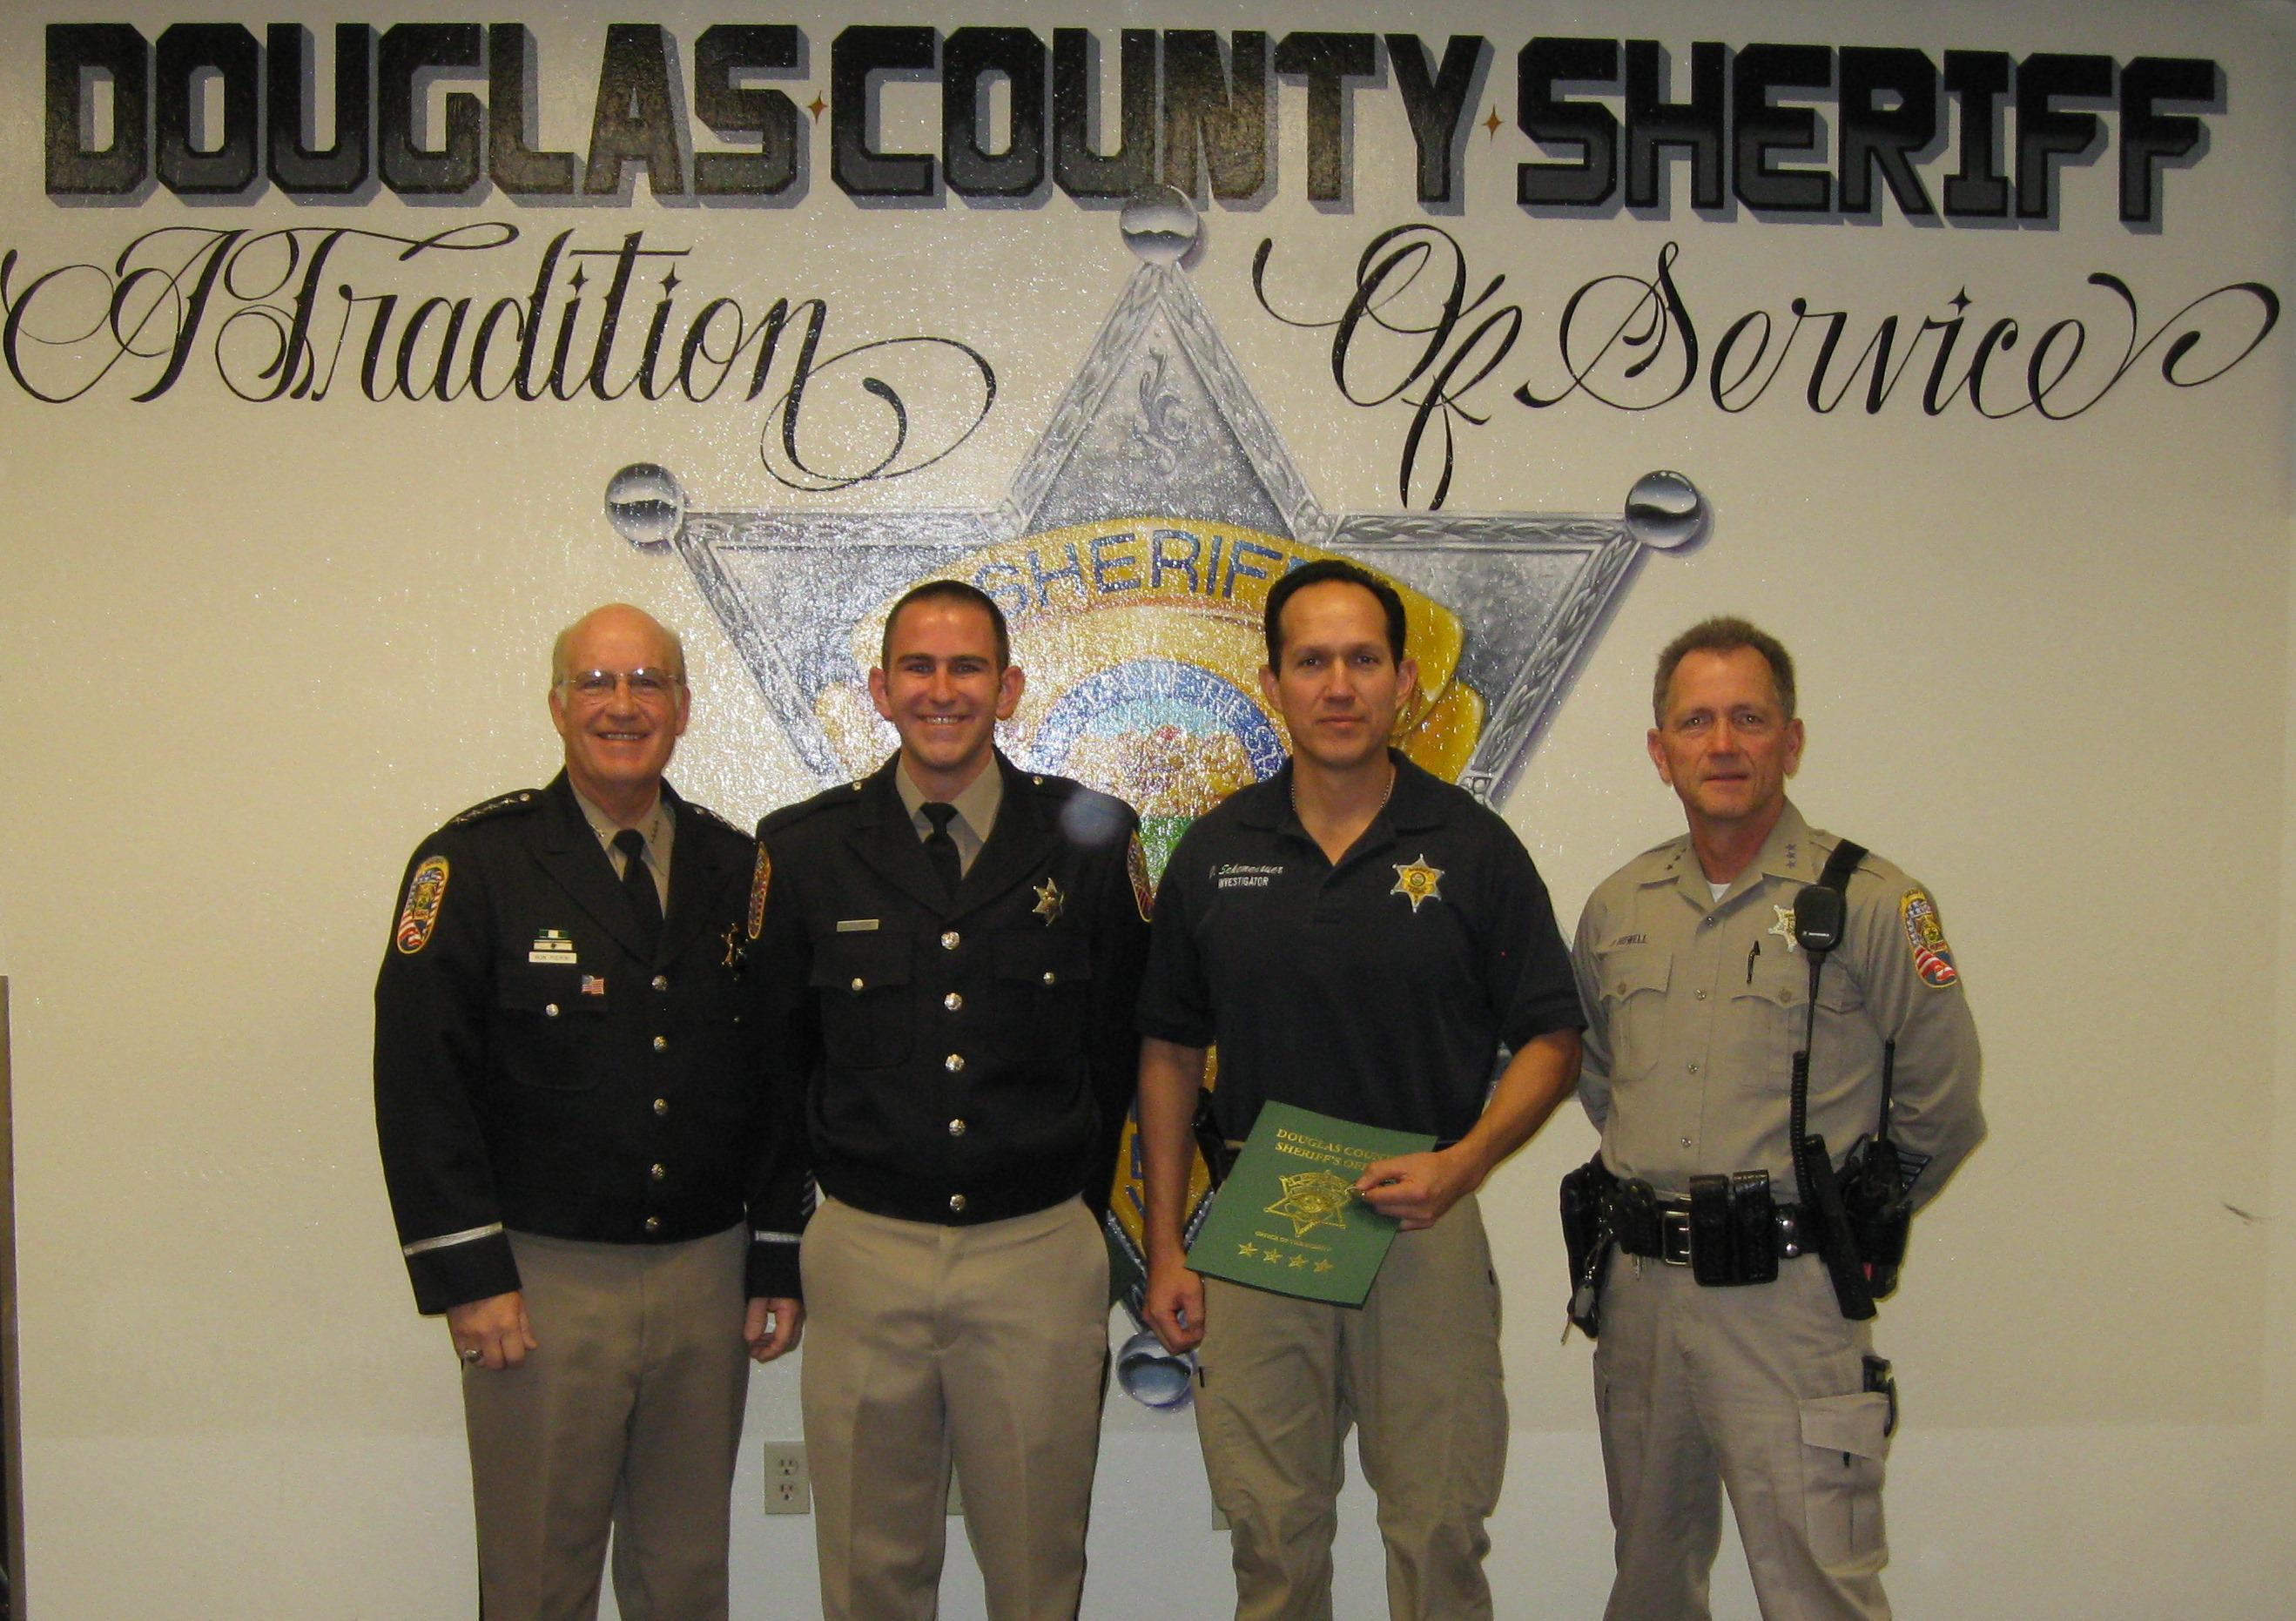 Douglas County Sheriff's Office Introduces New Deputy Christopher